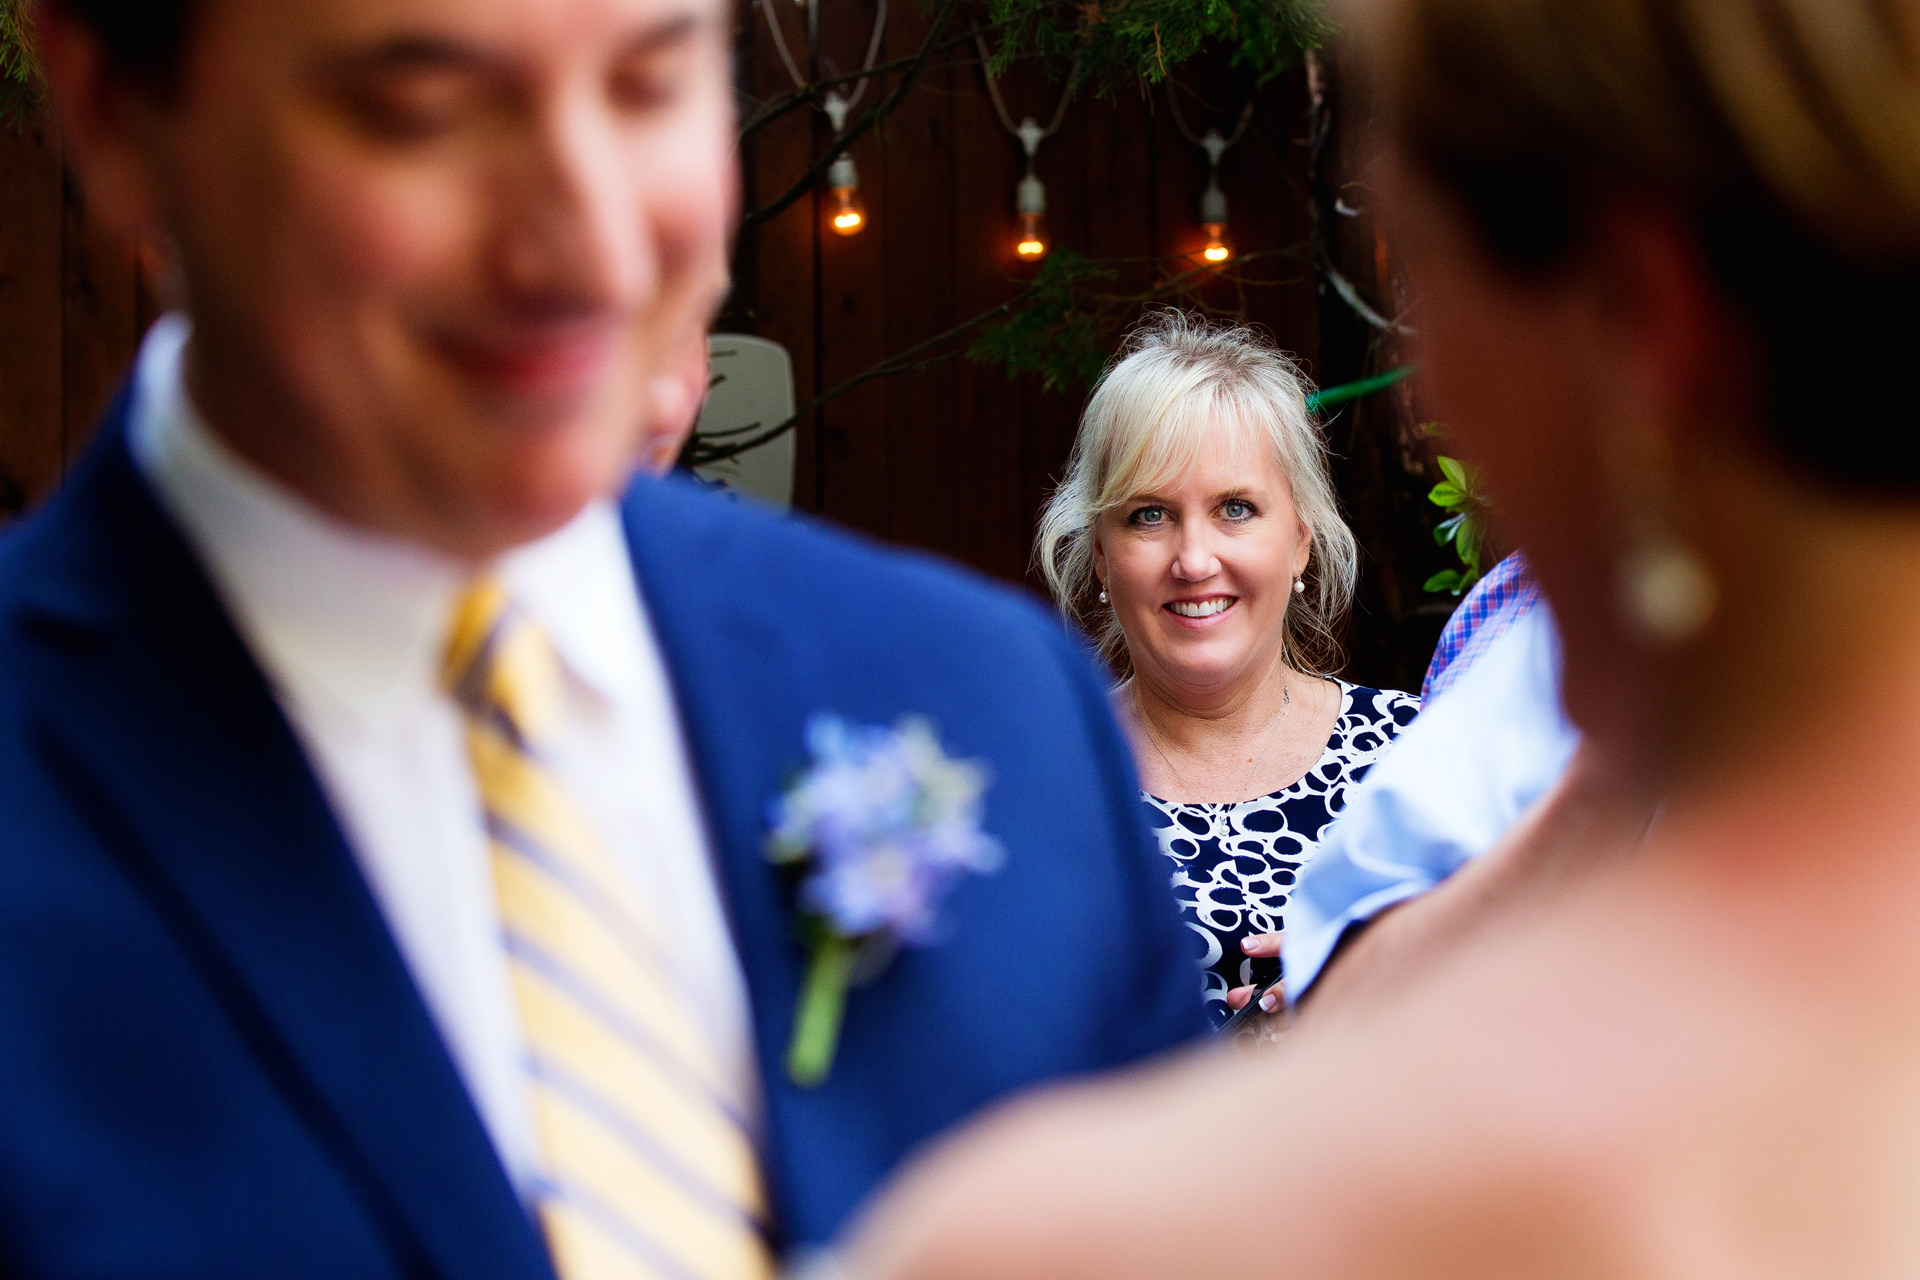 New Jersey Outdoor Elopement Ceremony Picture | A guest looks on the intimate wedding ceremony